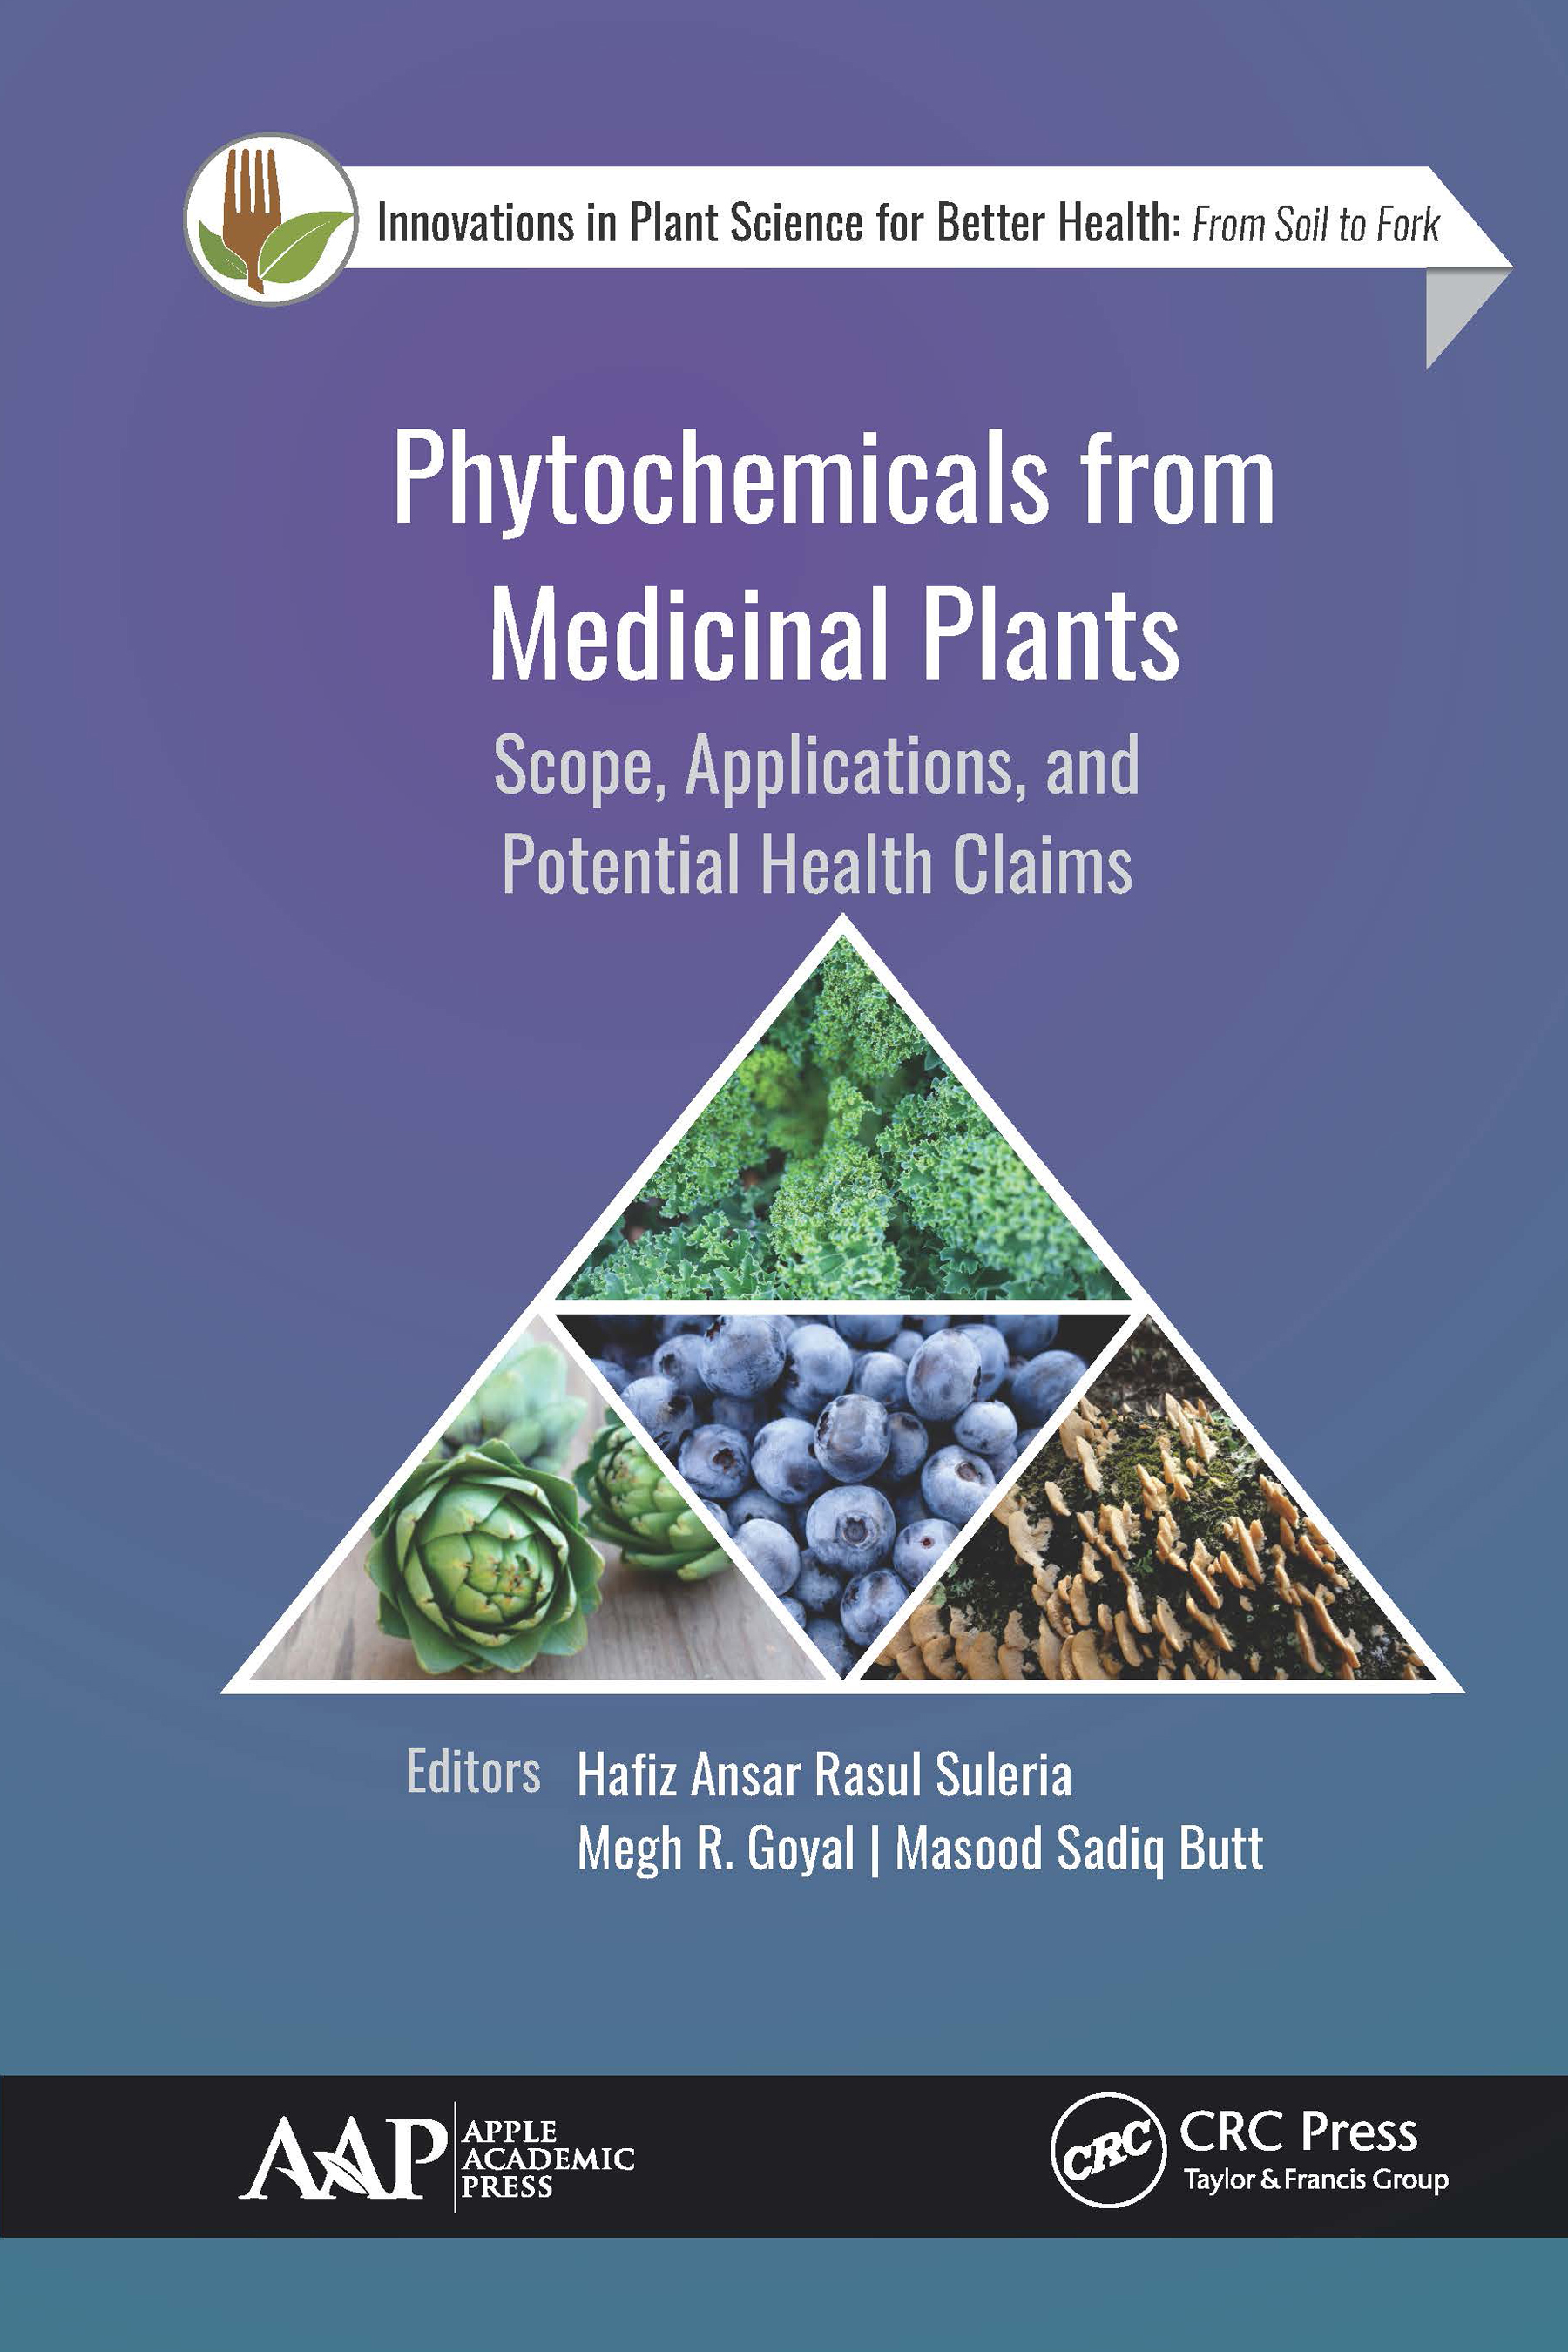 Phytochemicals from Medicinal Plants: Scope, Applications, and Potential Health Claims book cover